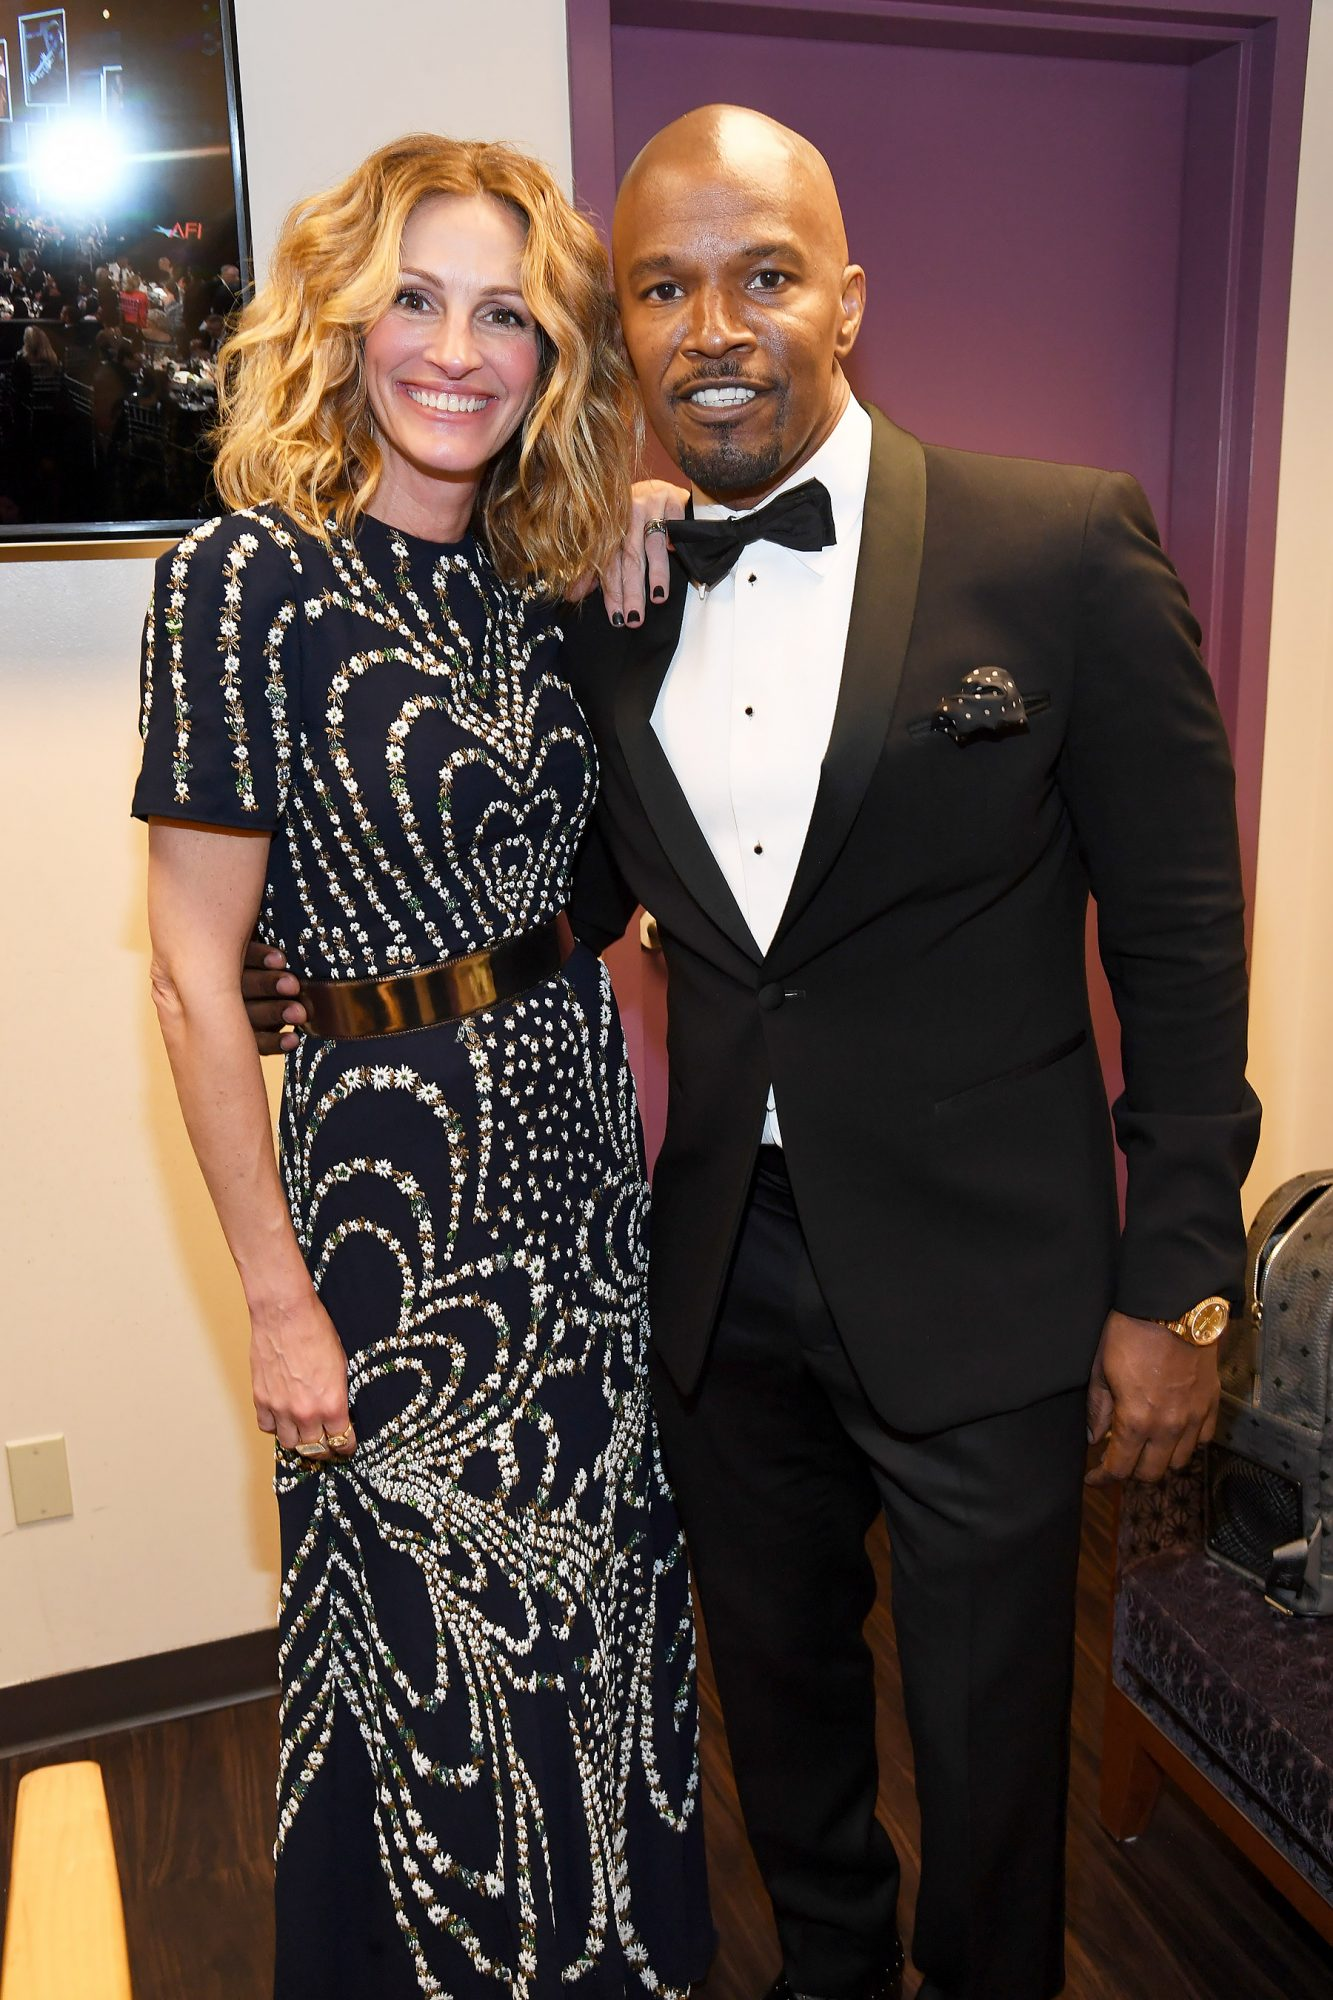 Julia Roberts and Jamie Foxx